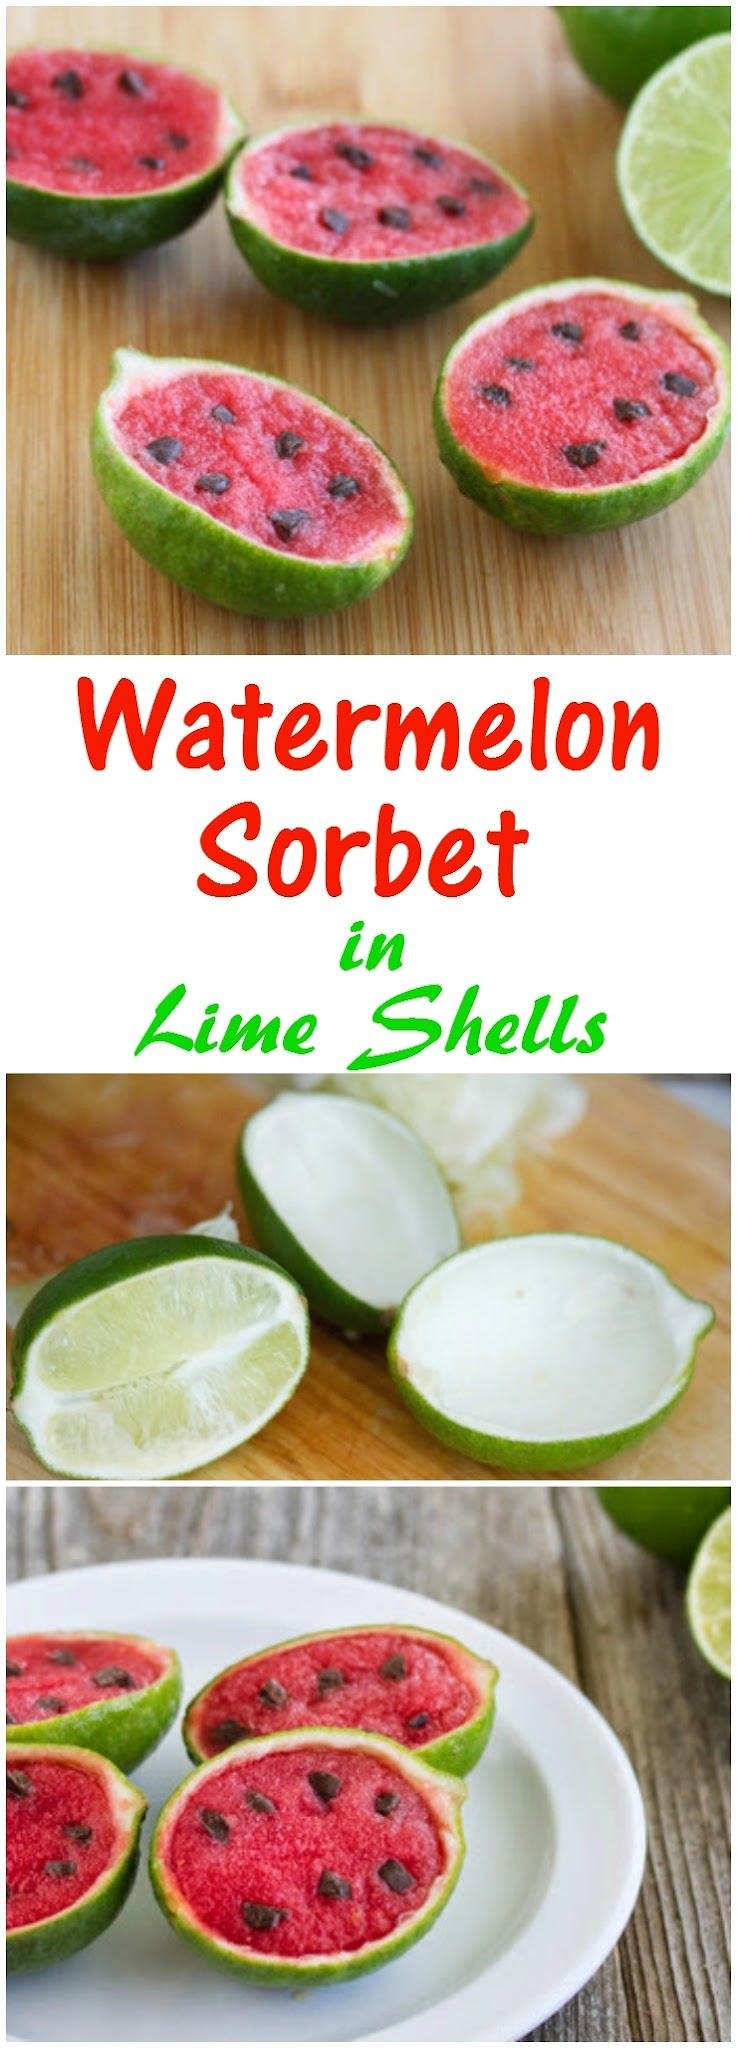 photo collage of Watermelon Sorbet in Lime Shells